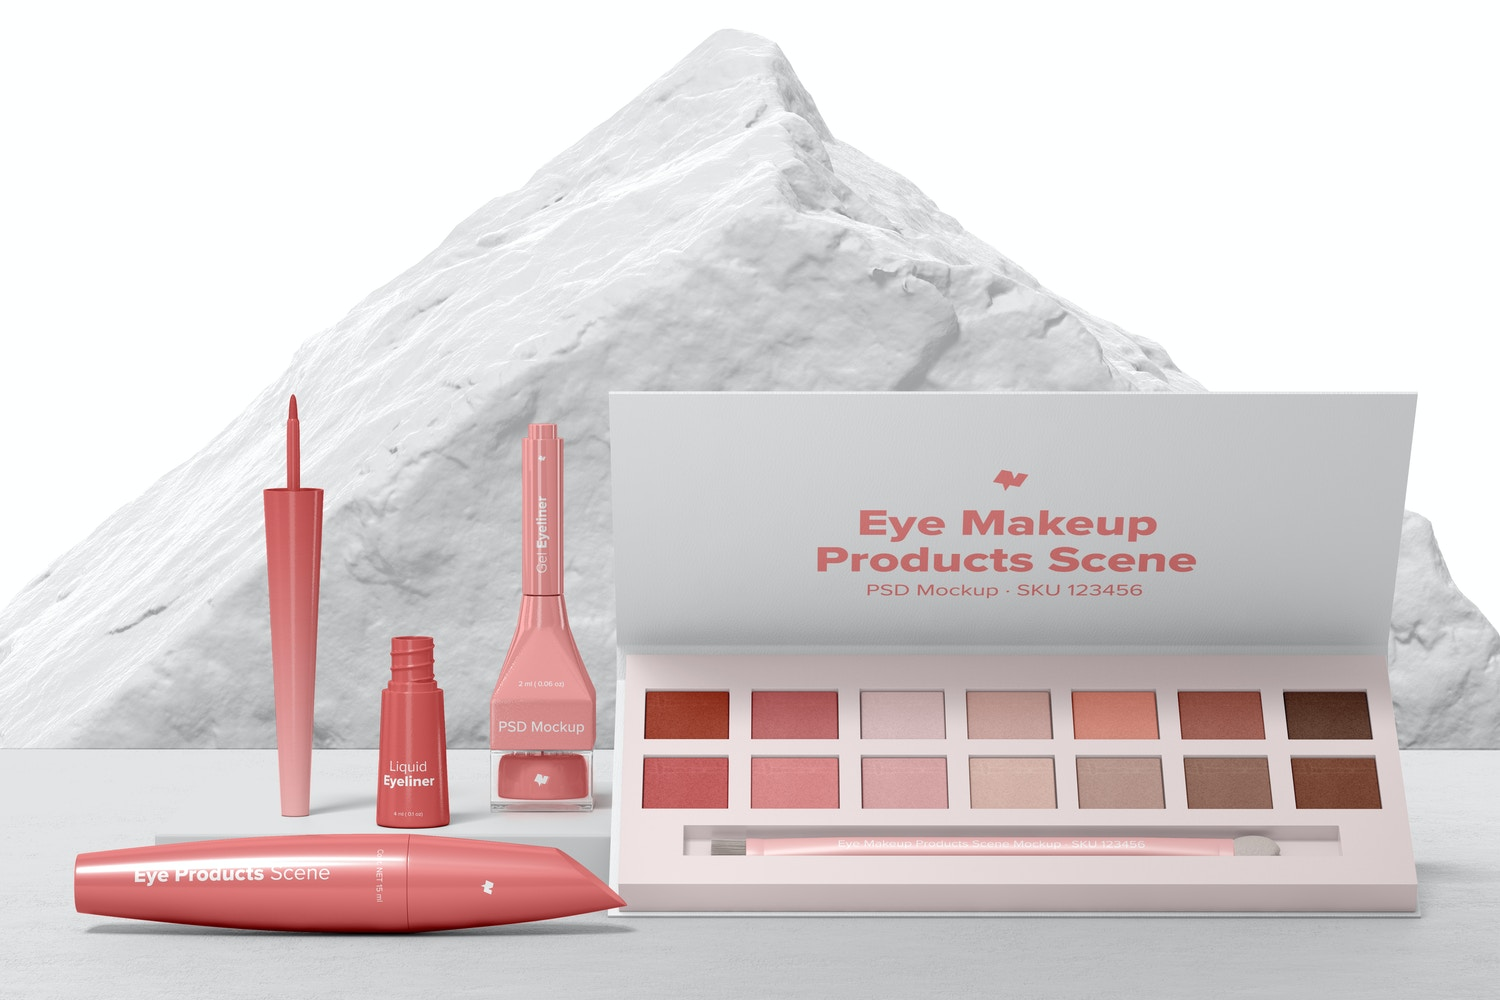 Eye Makeup Products Scene Mockup, Front View 02